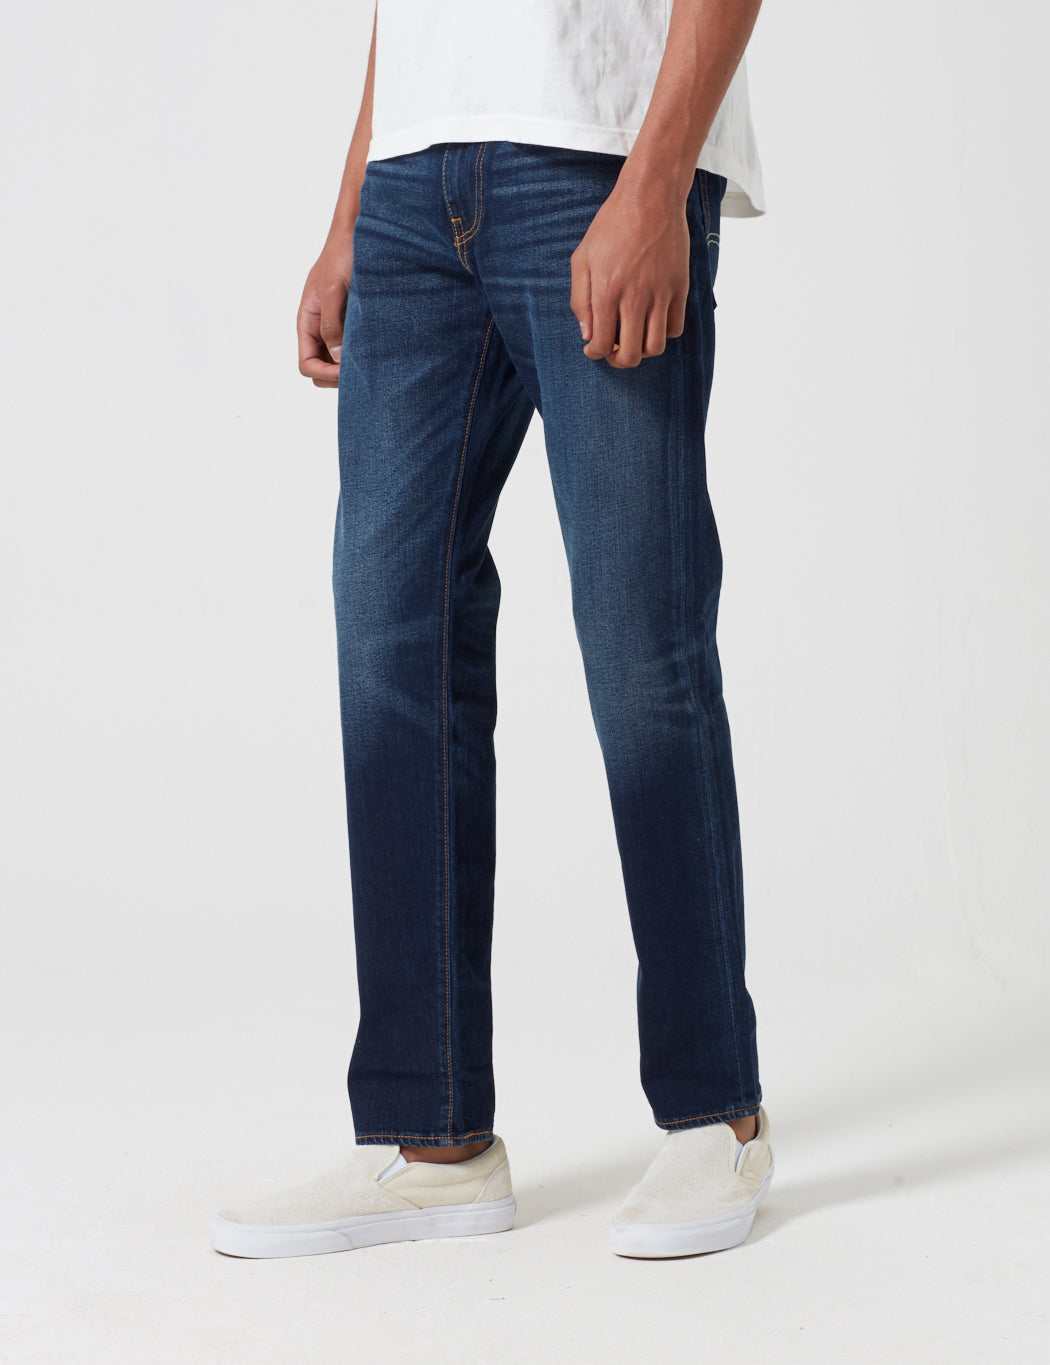 Levis 502 Jeans (Relaxed Tapered) - City Park Blue